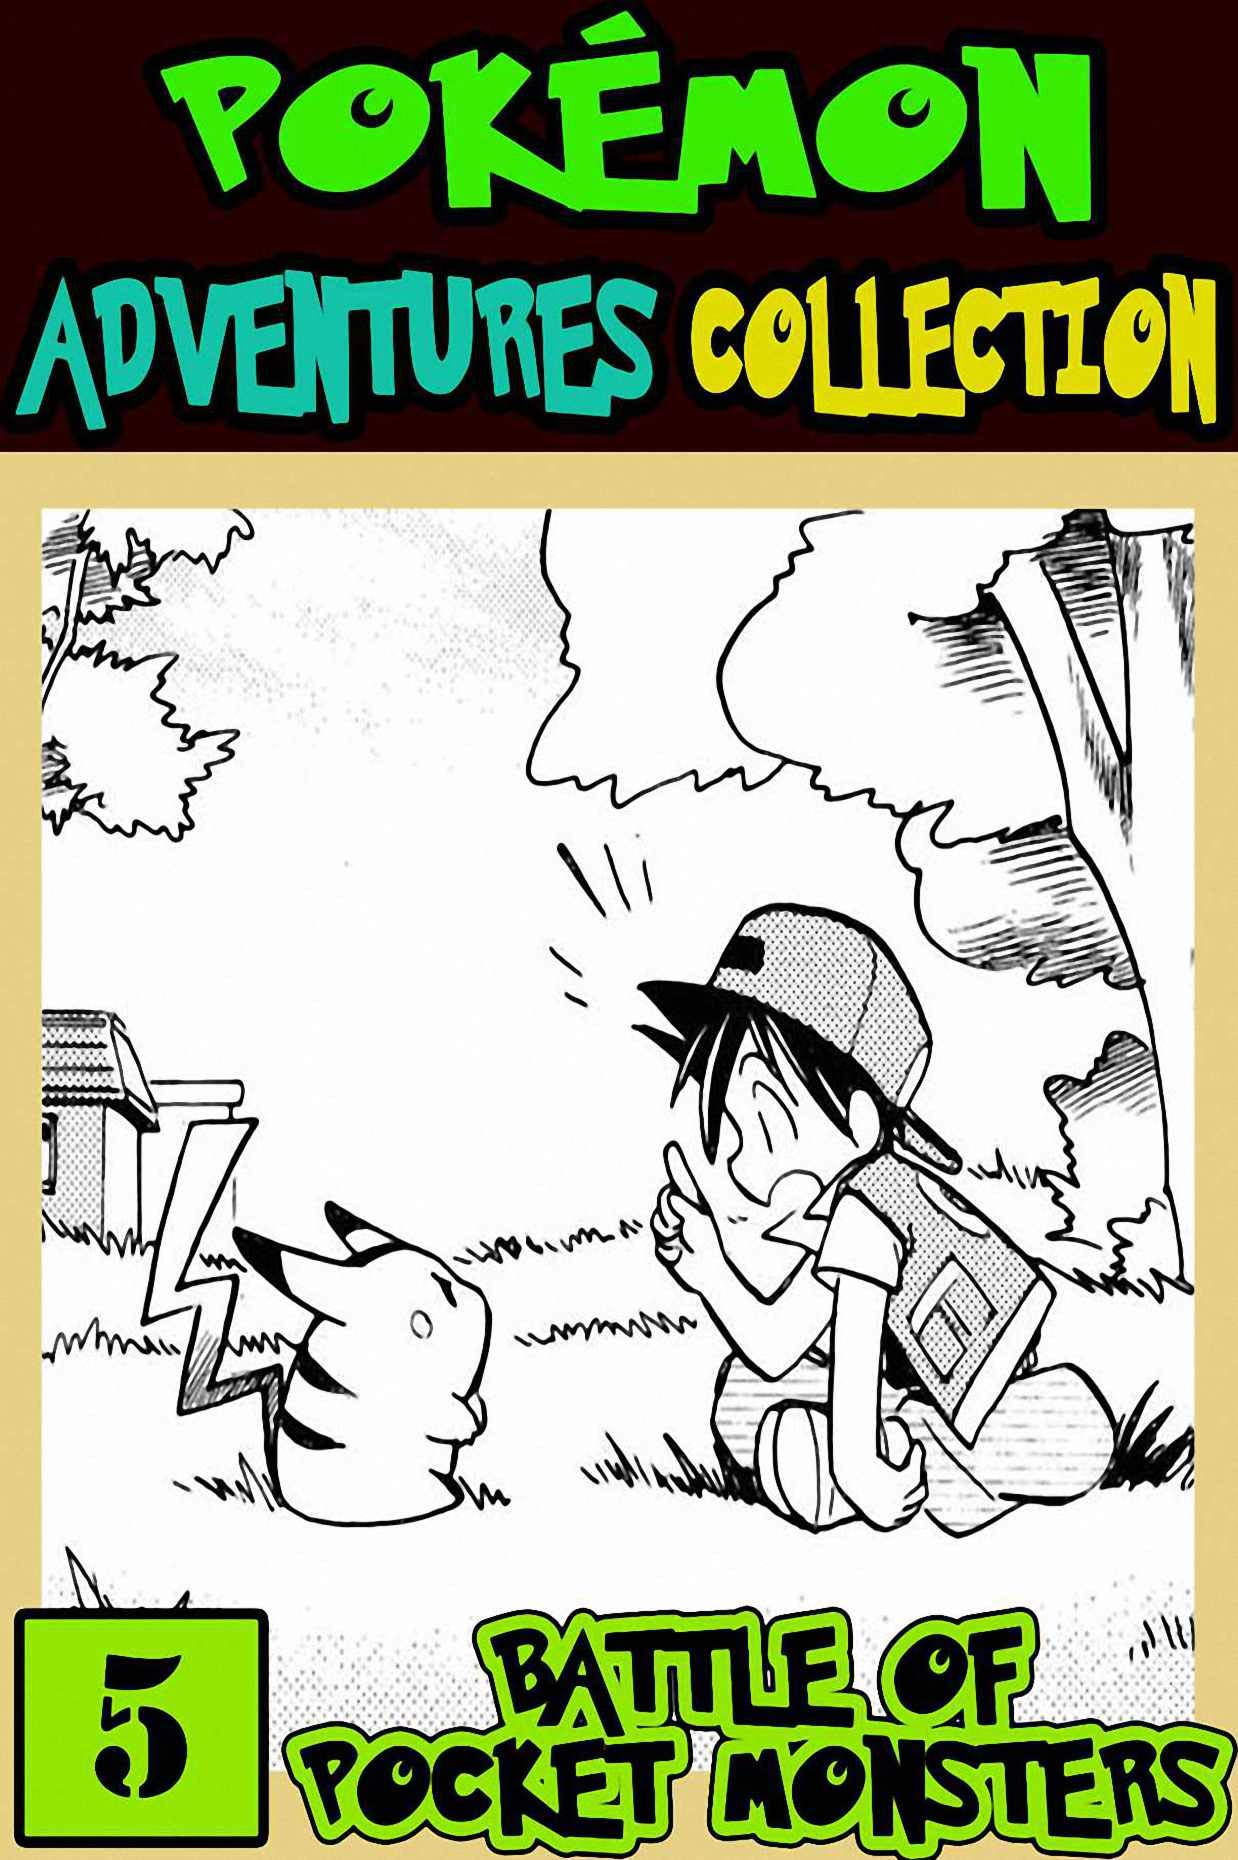 Battle Pocket: Collection 5 - Pokemon Manga Adventures Graphic Novel For Boys, Girls, Kids